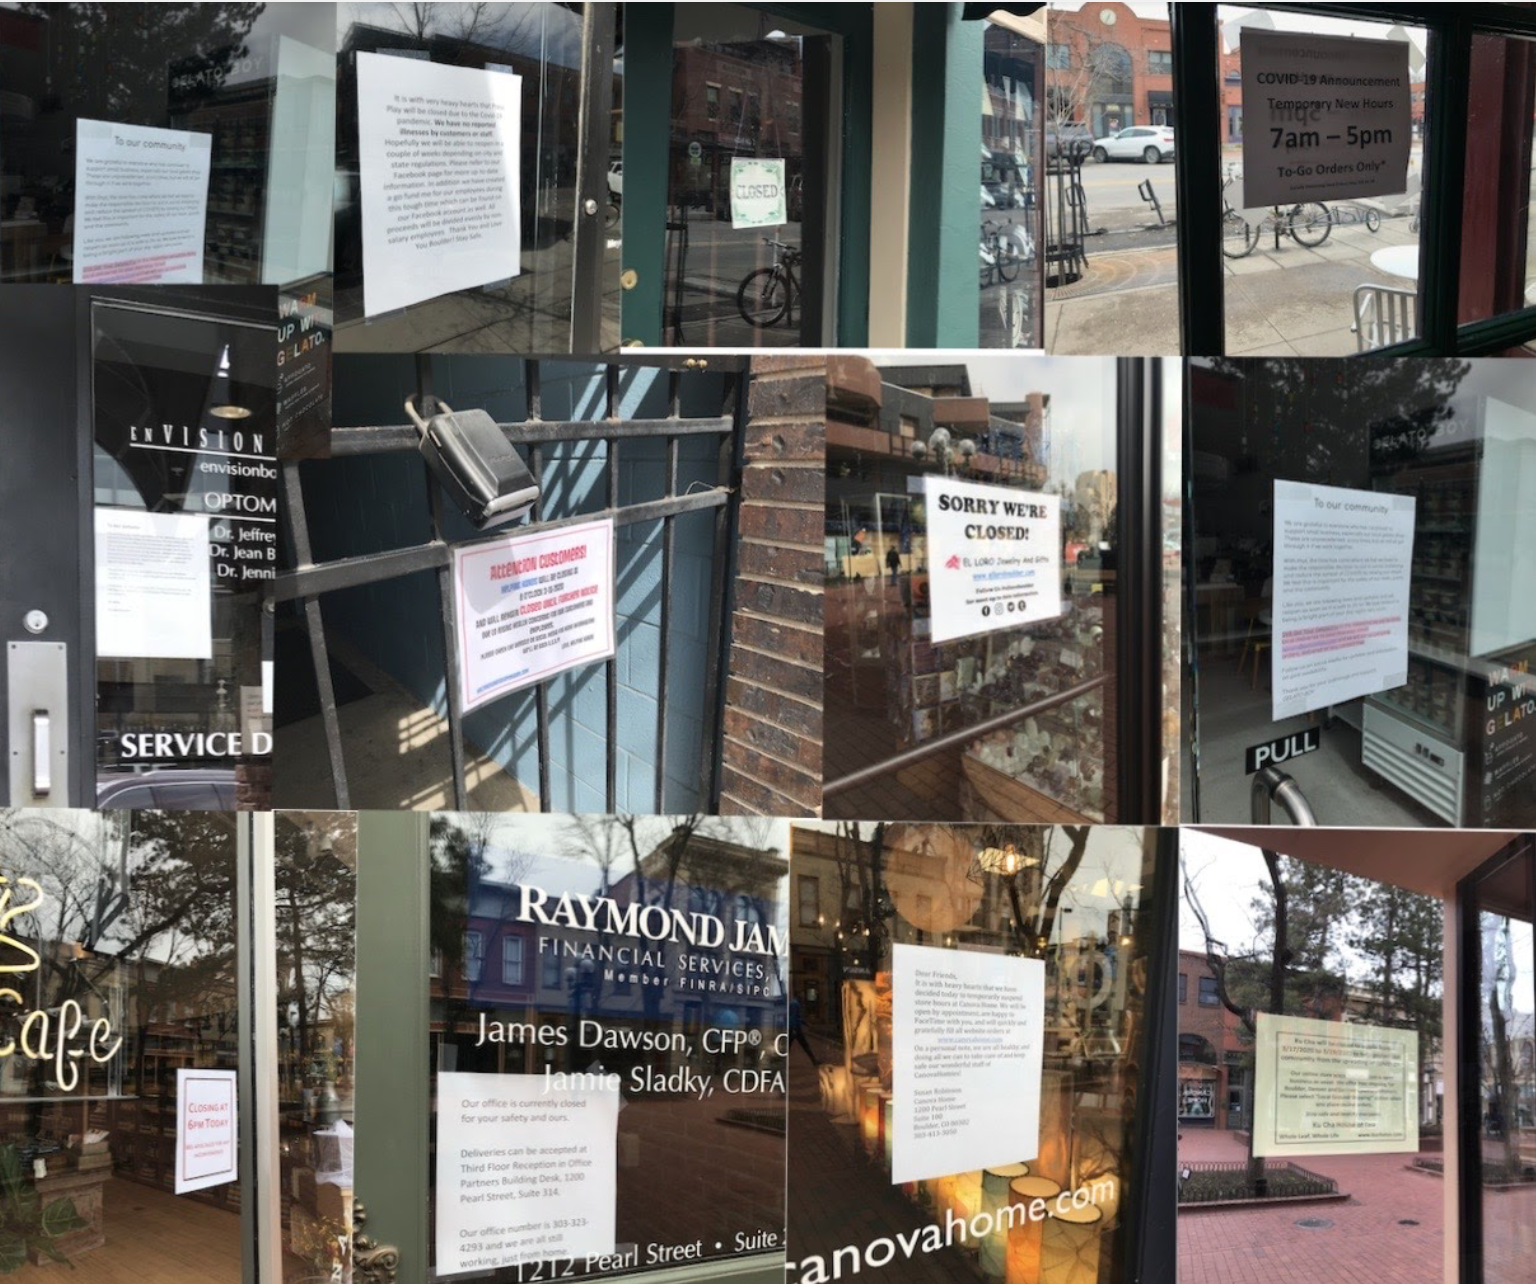 A number of restaurants have signs explaining their closure or takeout-only rules. Photo by Mairead Brogan.